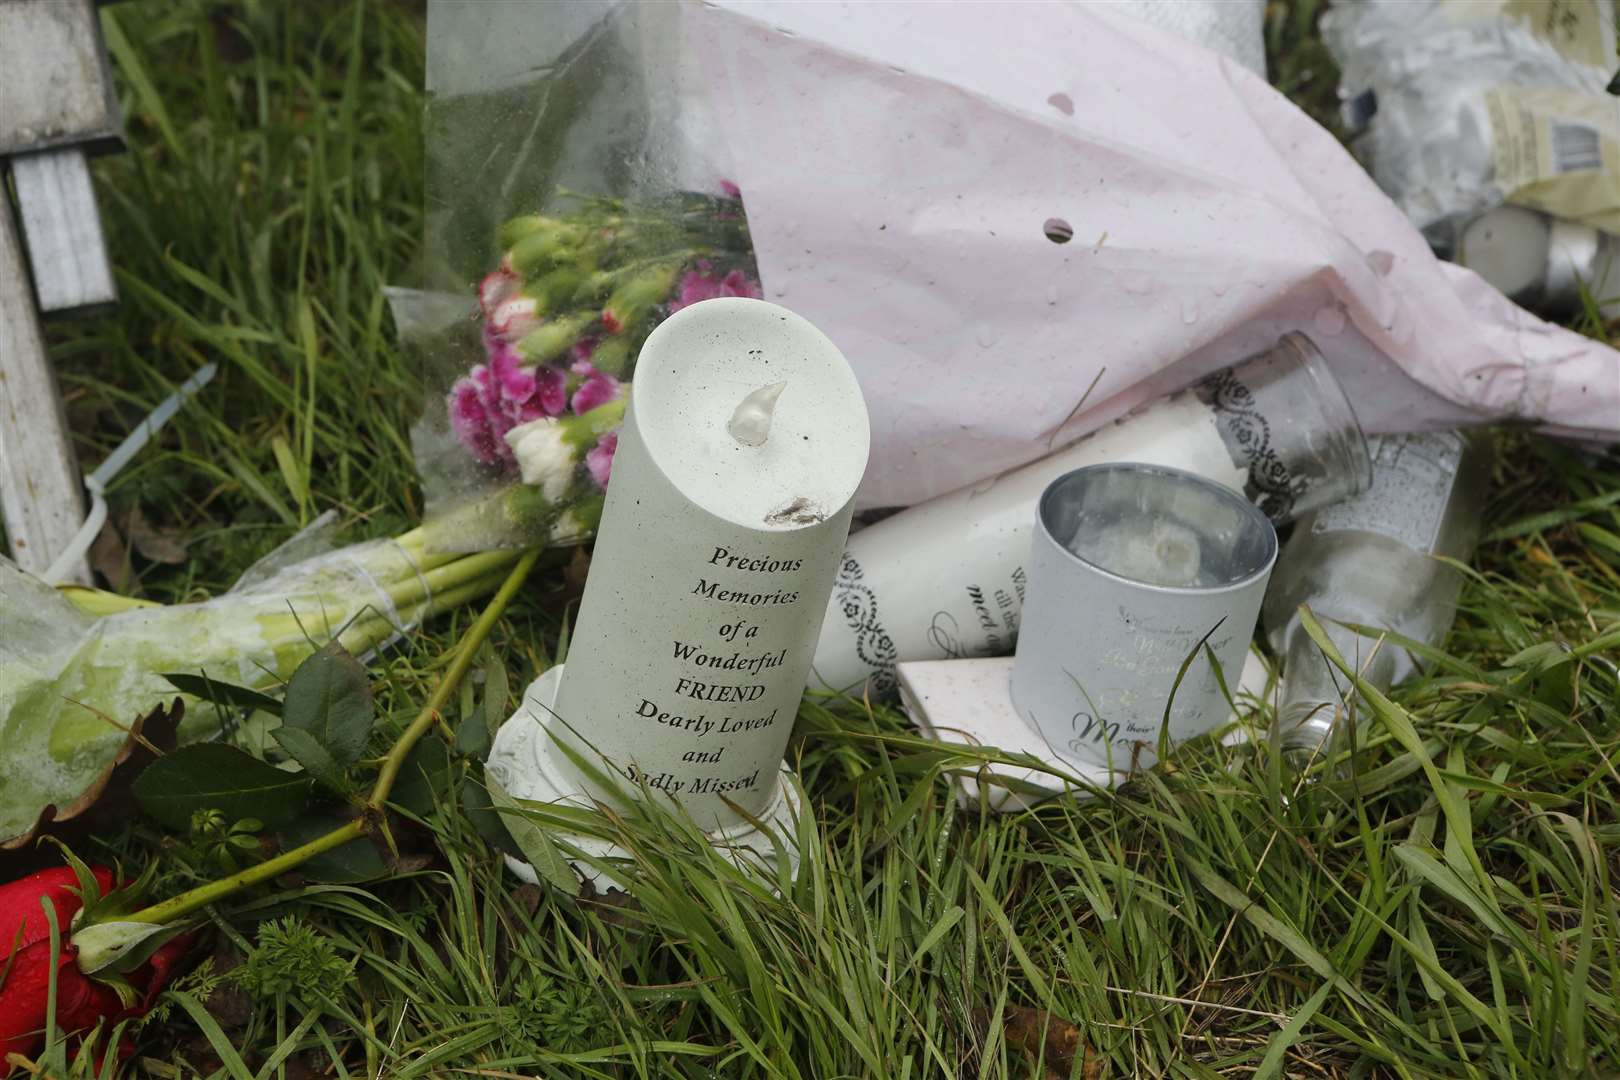 A shrine in memory of Franky Bryan who was hit and killed by a car on the A2